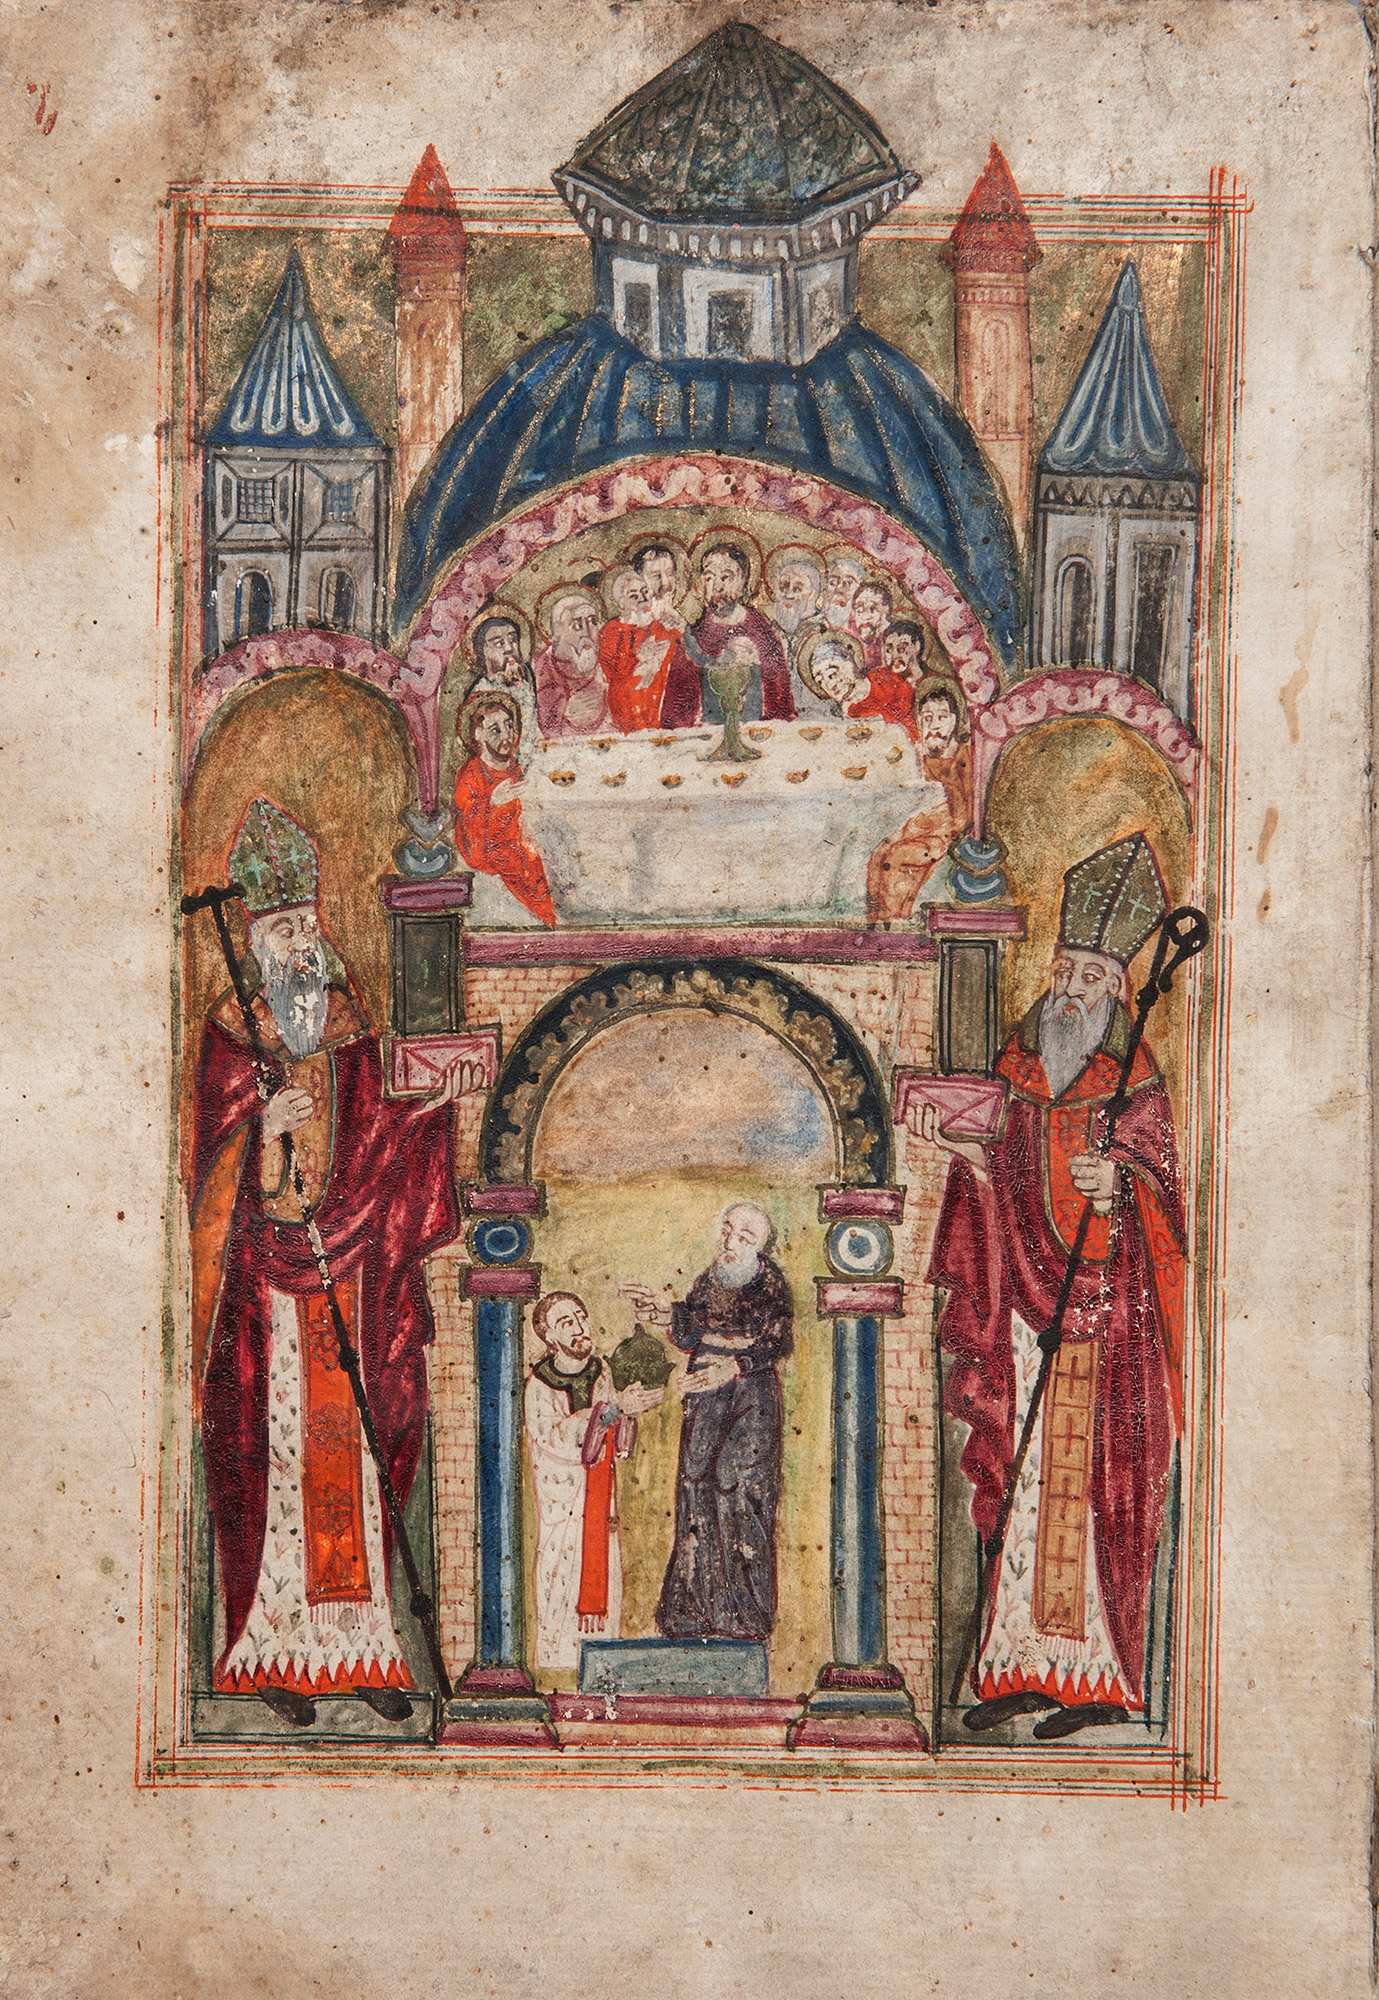 Illumination of the Liturgy of the Eucharist. Hand-copied in AD 1711 by Yeghia Marsvantsi Elijah of Marsvan. Donated to the Armenian Museum by Adele and Haig Der Manuelian.